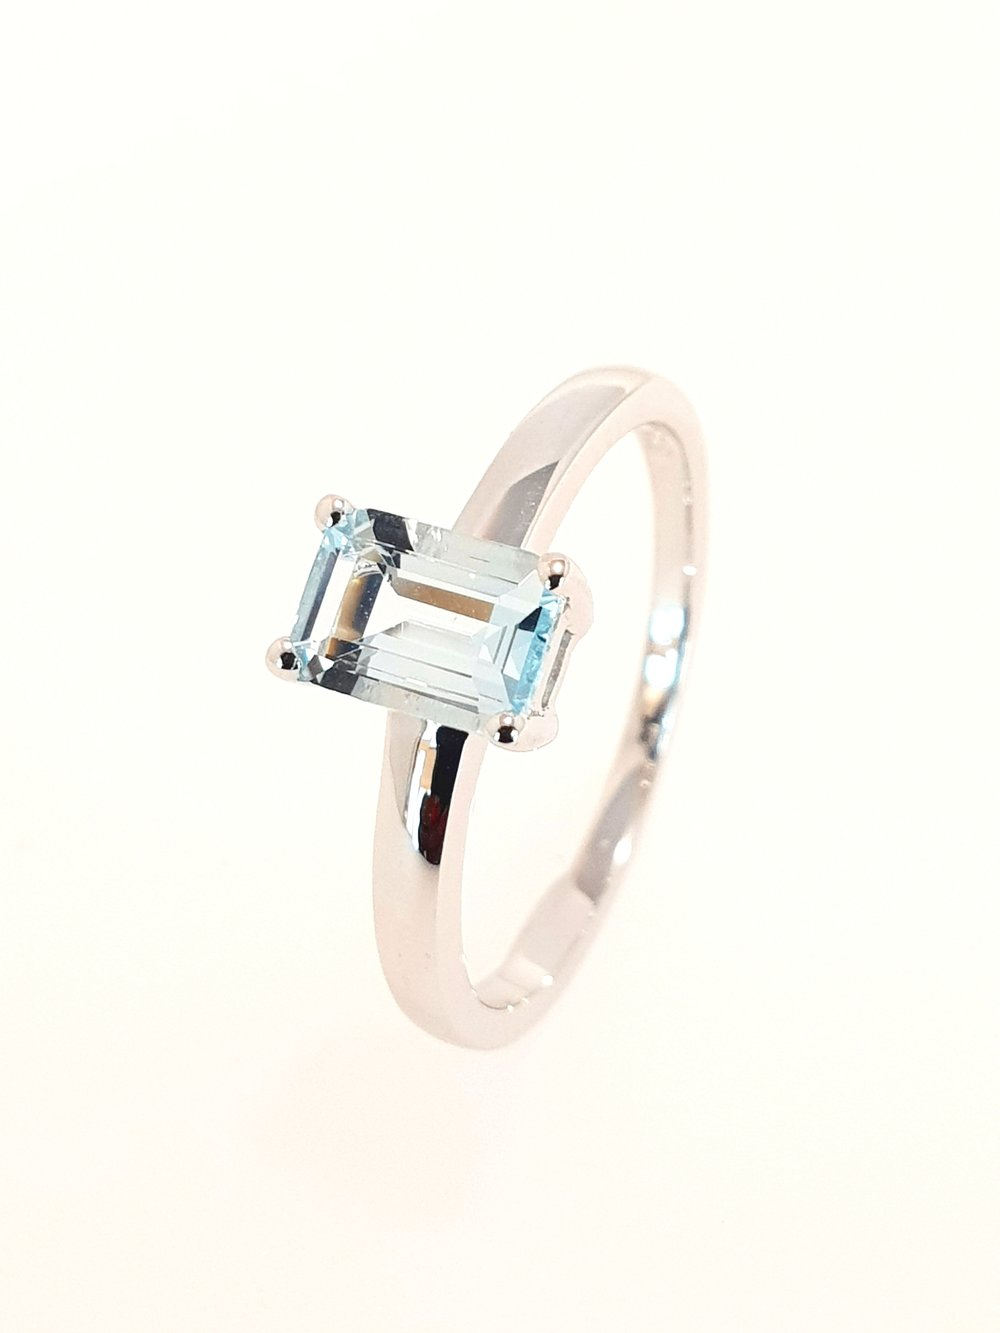 9ct White Gold Aquamarine Ring  Stock Code: G1965  £400